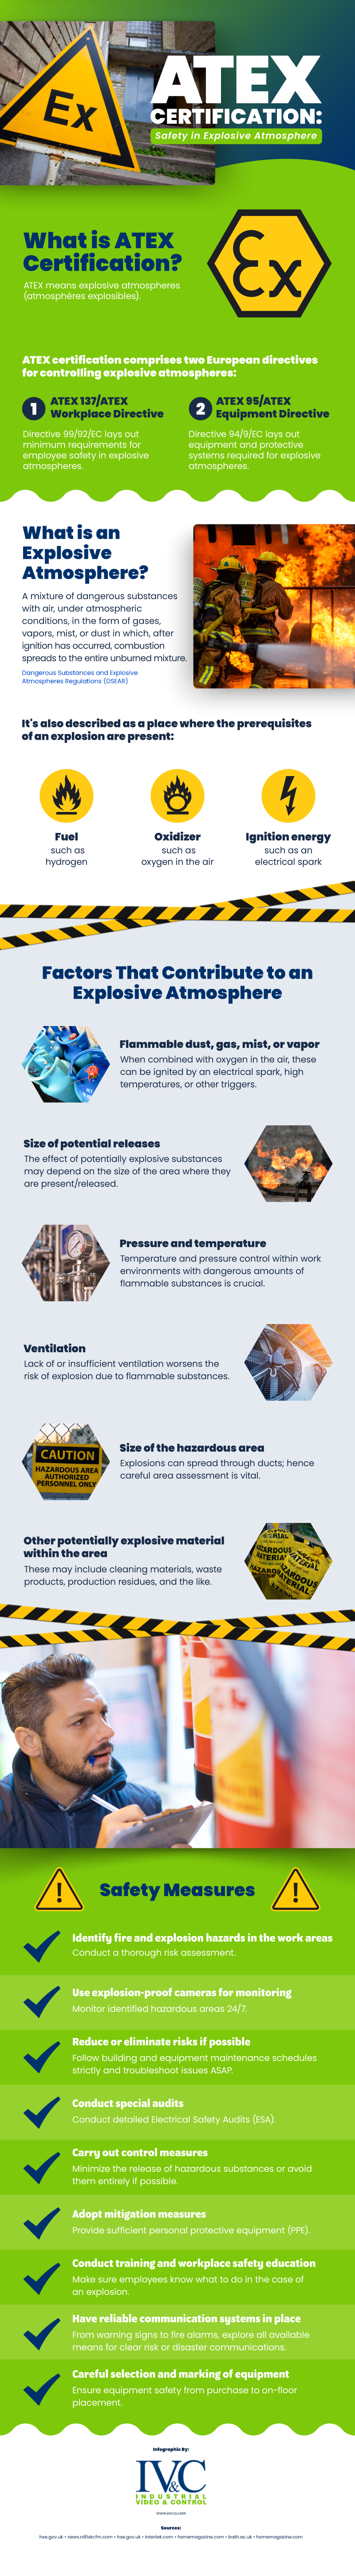 Infographic guide to ATEX certification